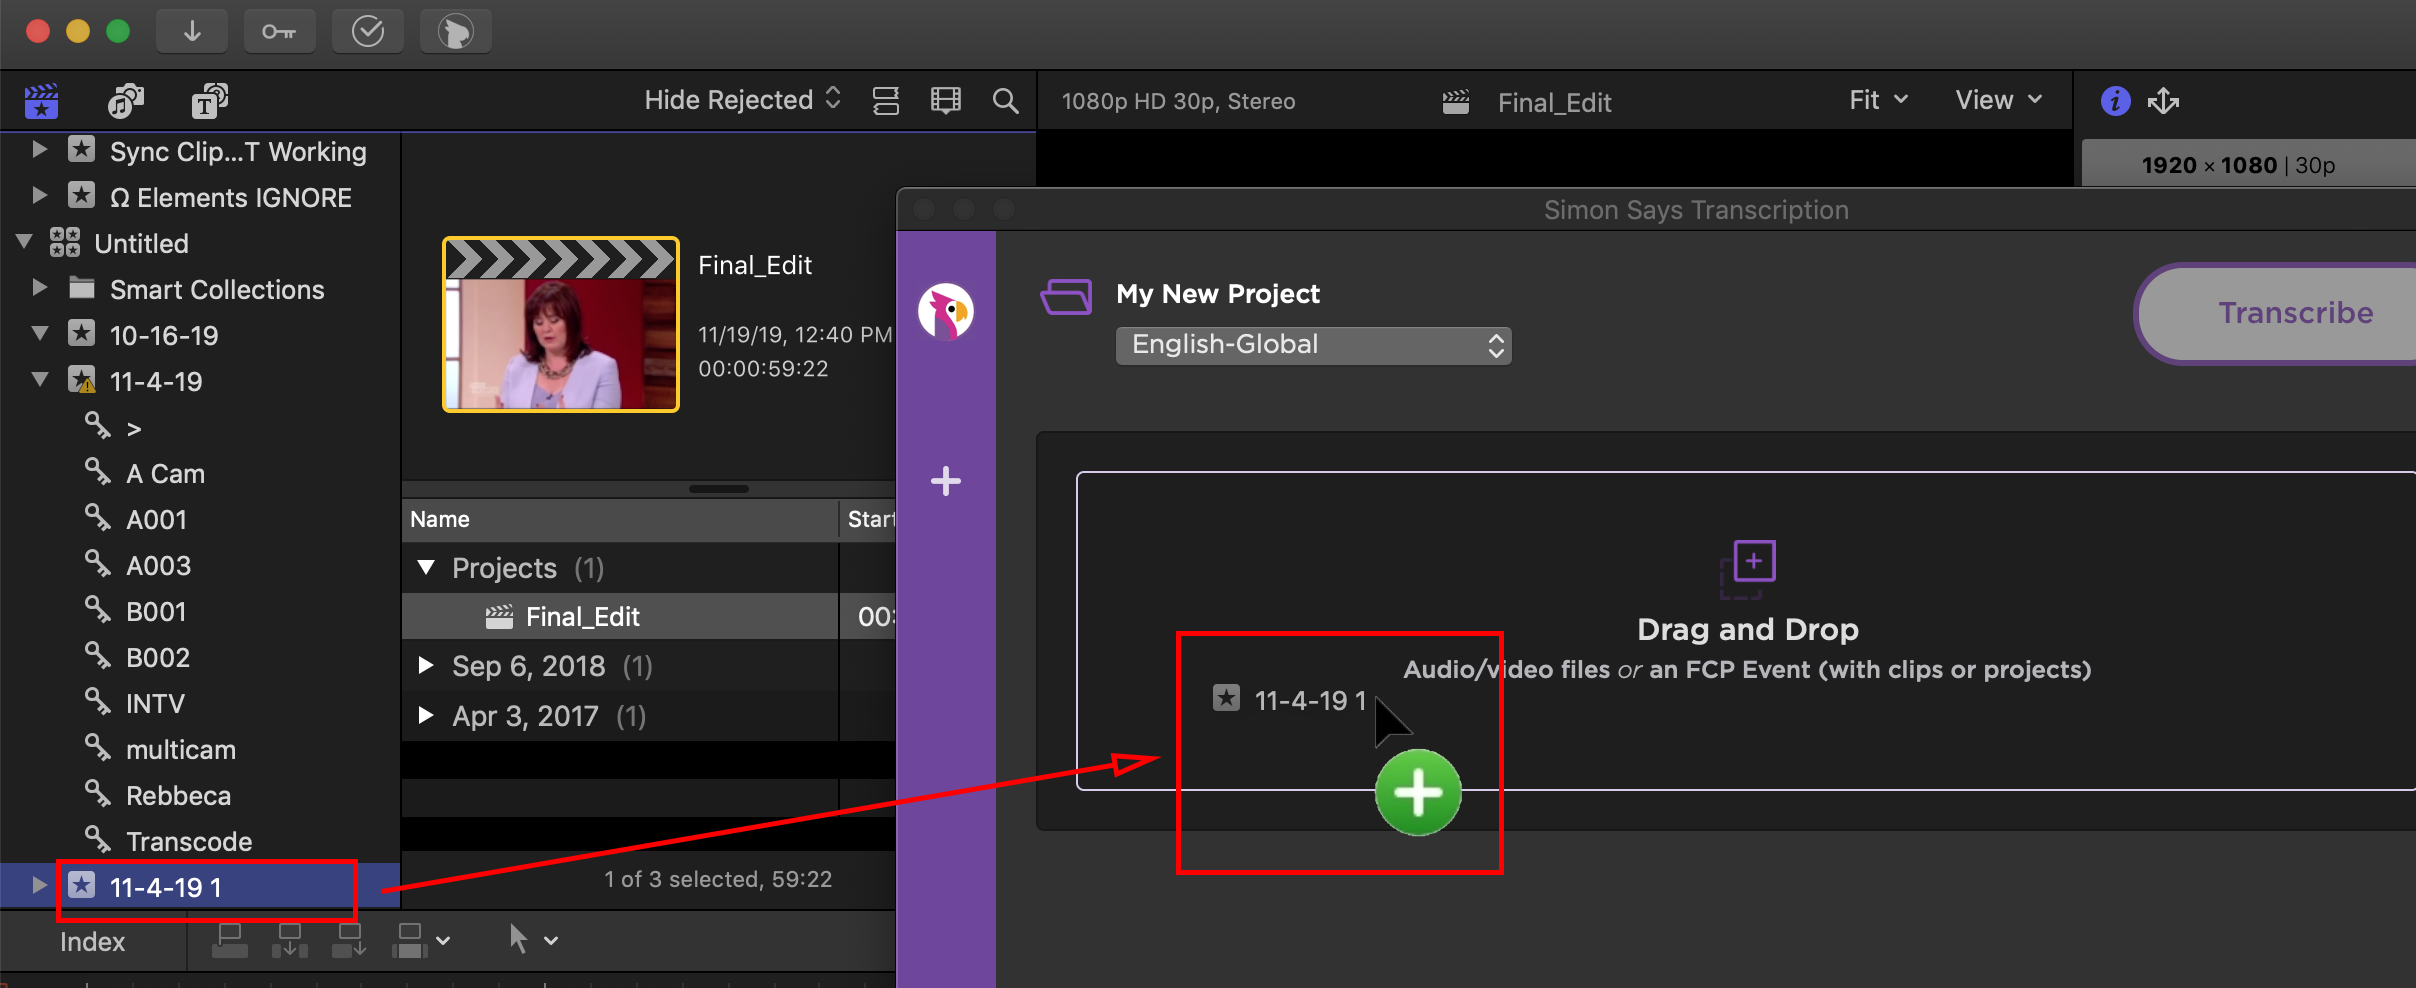 Have an FCP Event with an FCP Project and drag the Event to the Simon Says extension